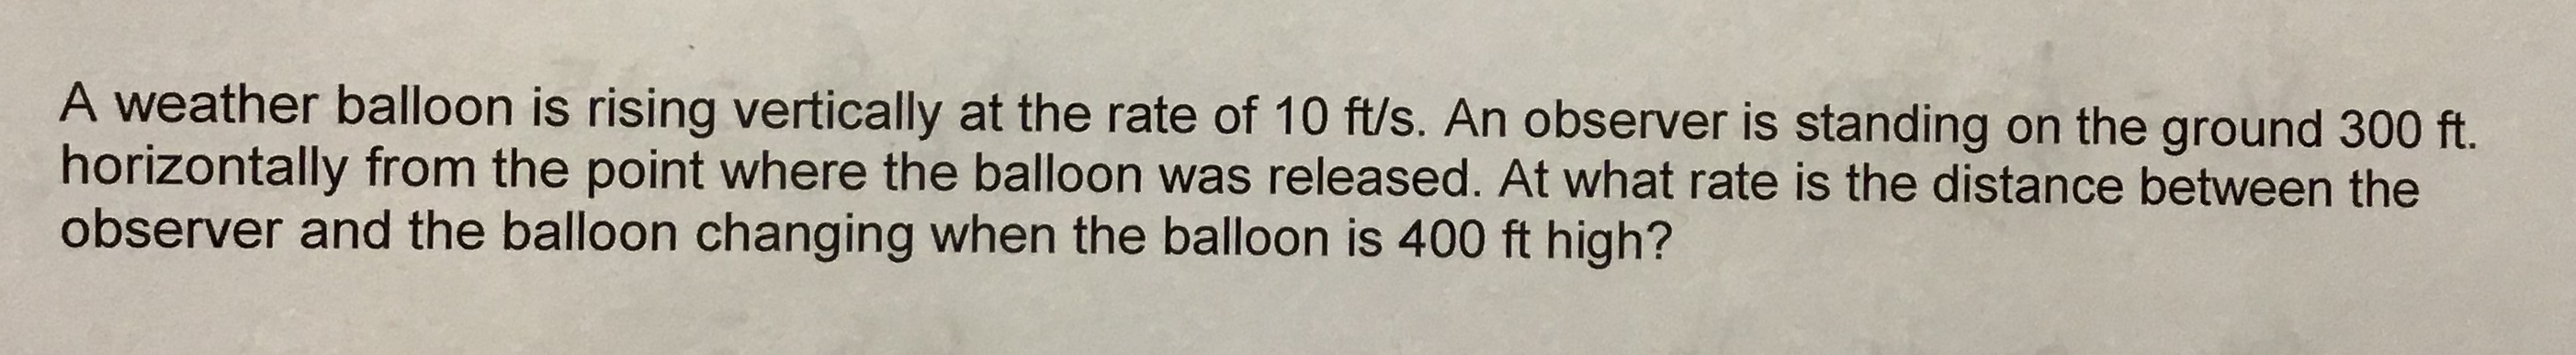 A weather balloon is rising vertically at the rate of 10 ft/s. An observer is standing on the ground 300 ft. horizontally from the point where the balloon was released. At what rate is the distance between the observer and the balloon changing when the balloon is 400 ft high?